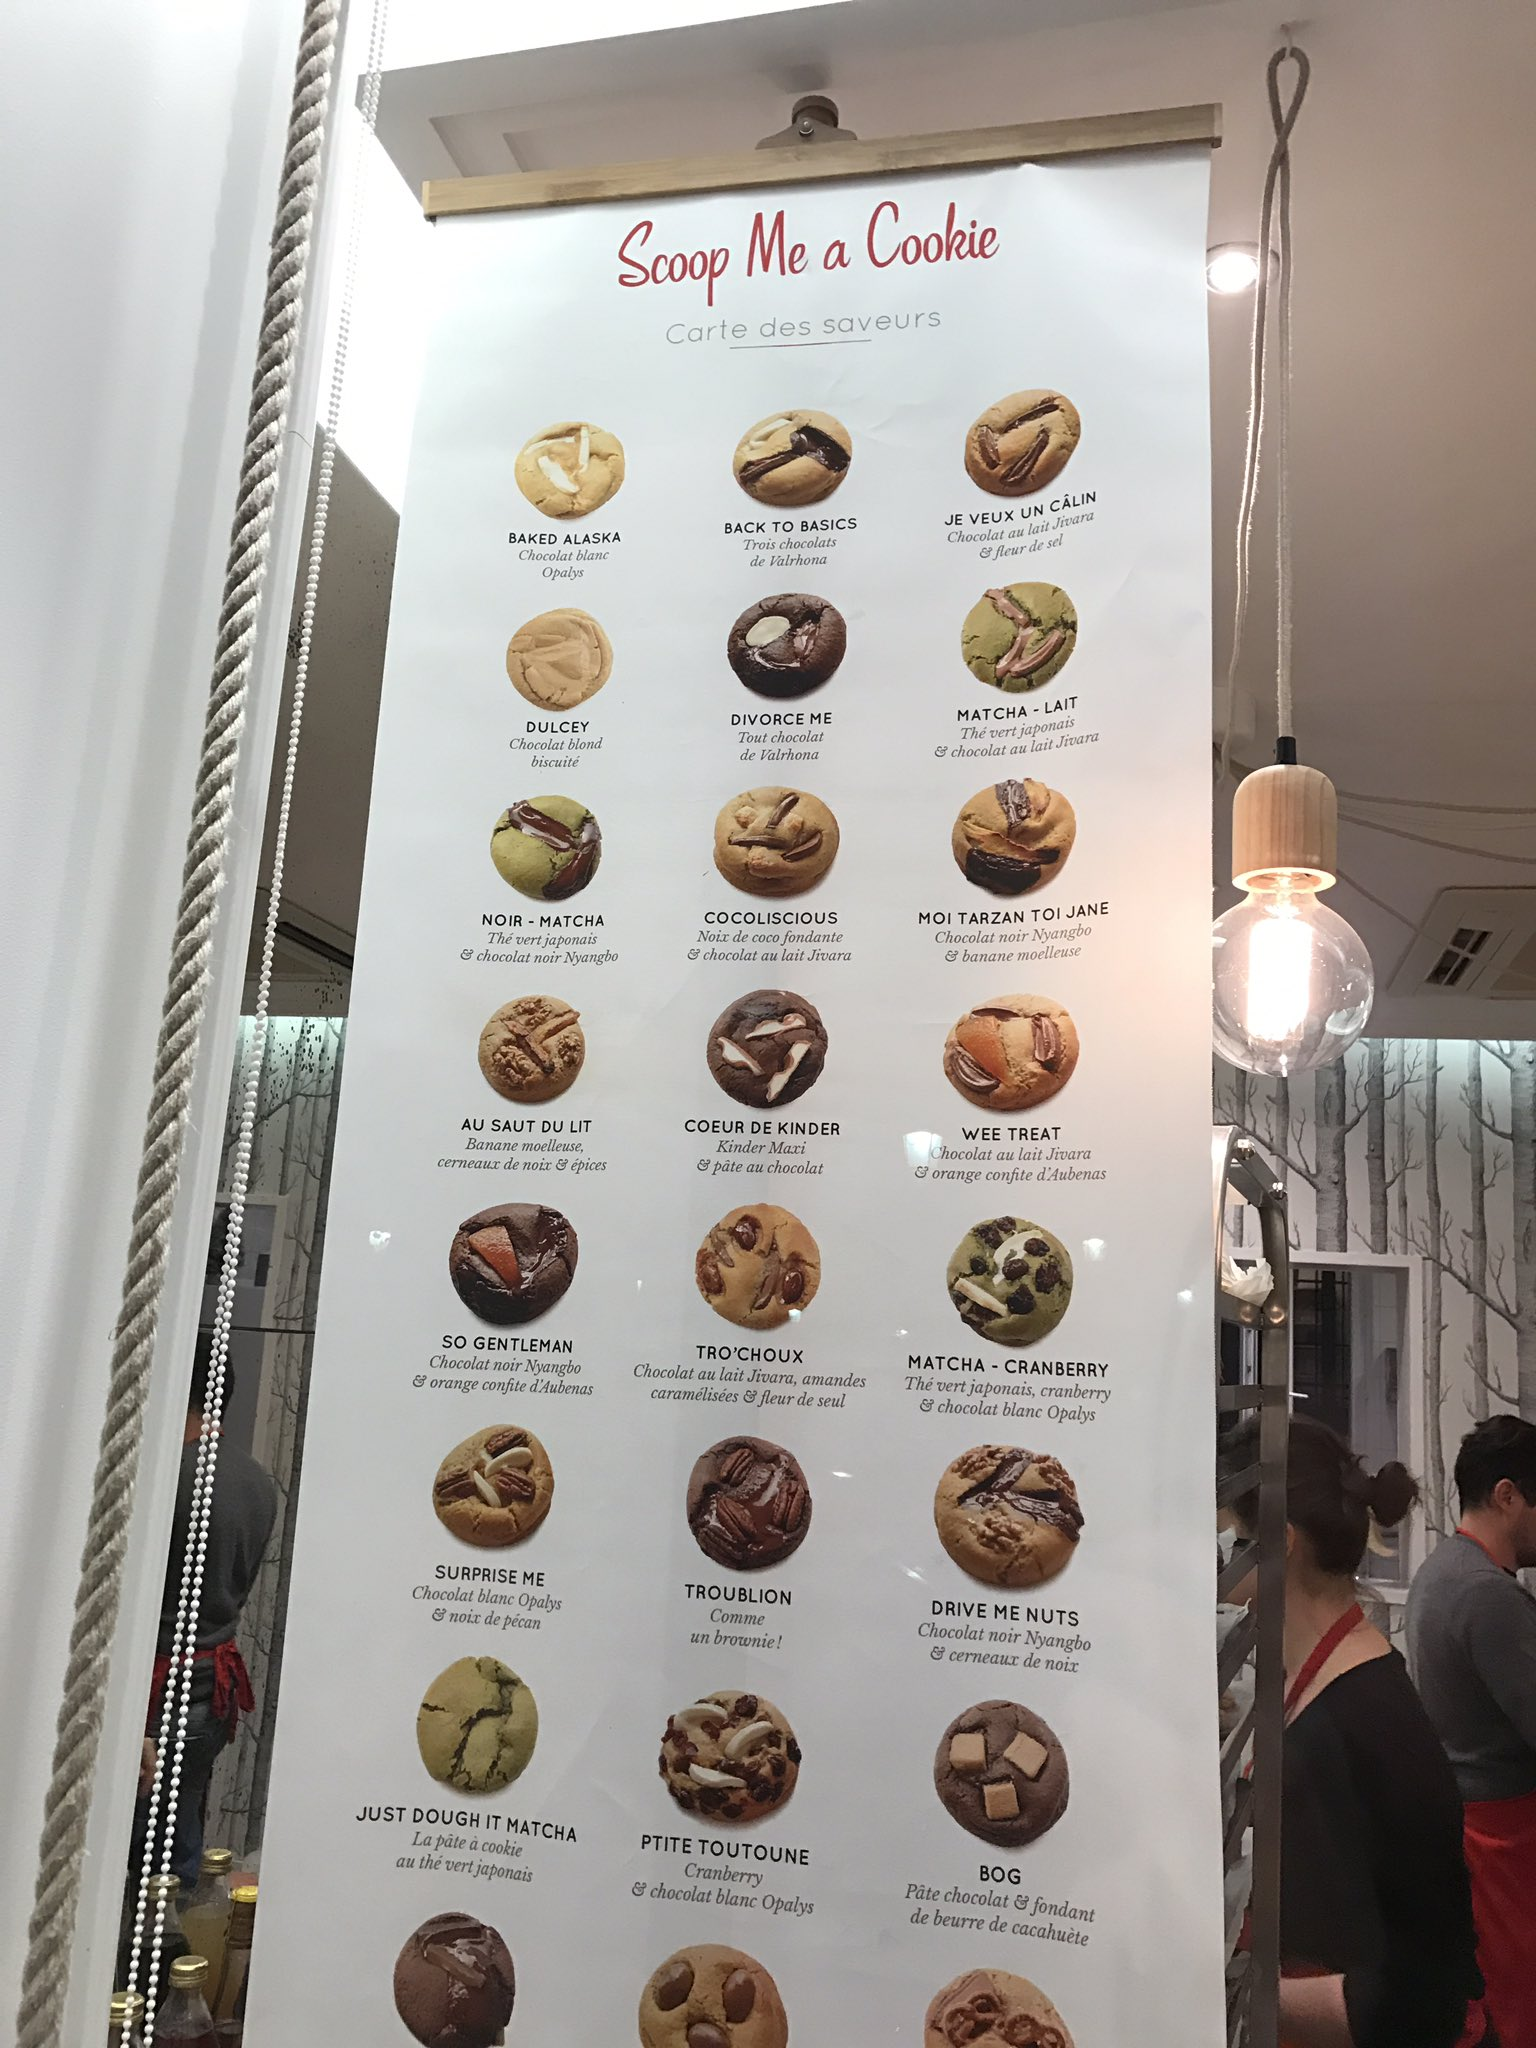 Jérôme Tomasini On Twitter Cookies By Scoopmeacookie Are